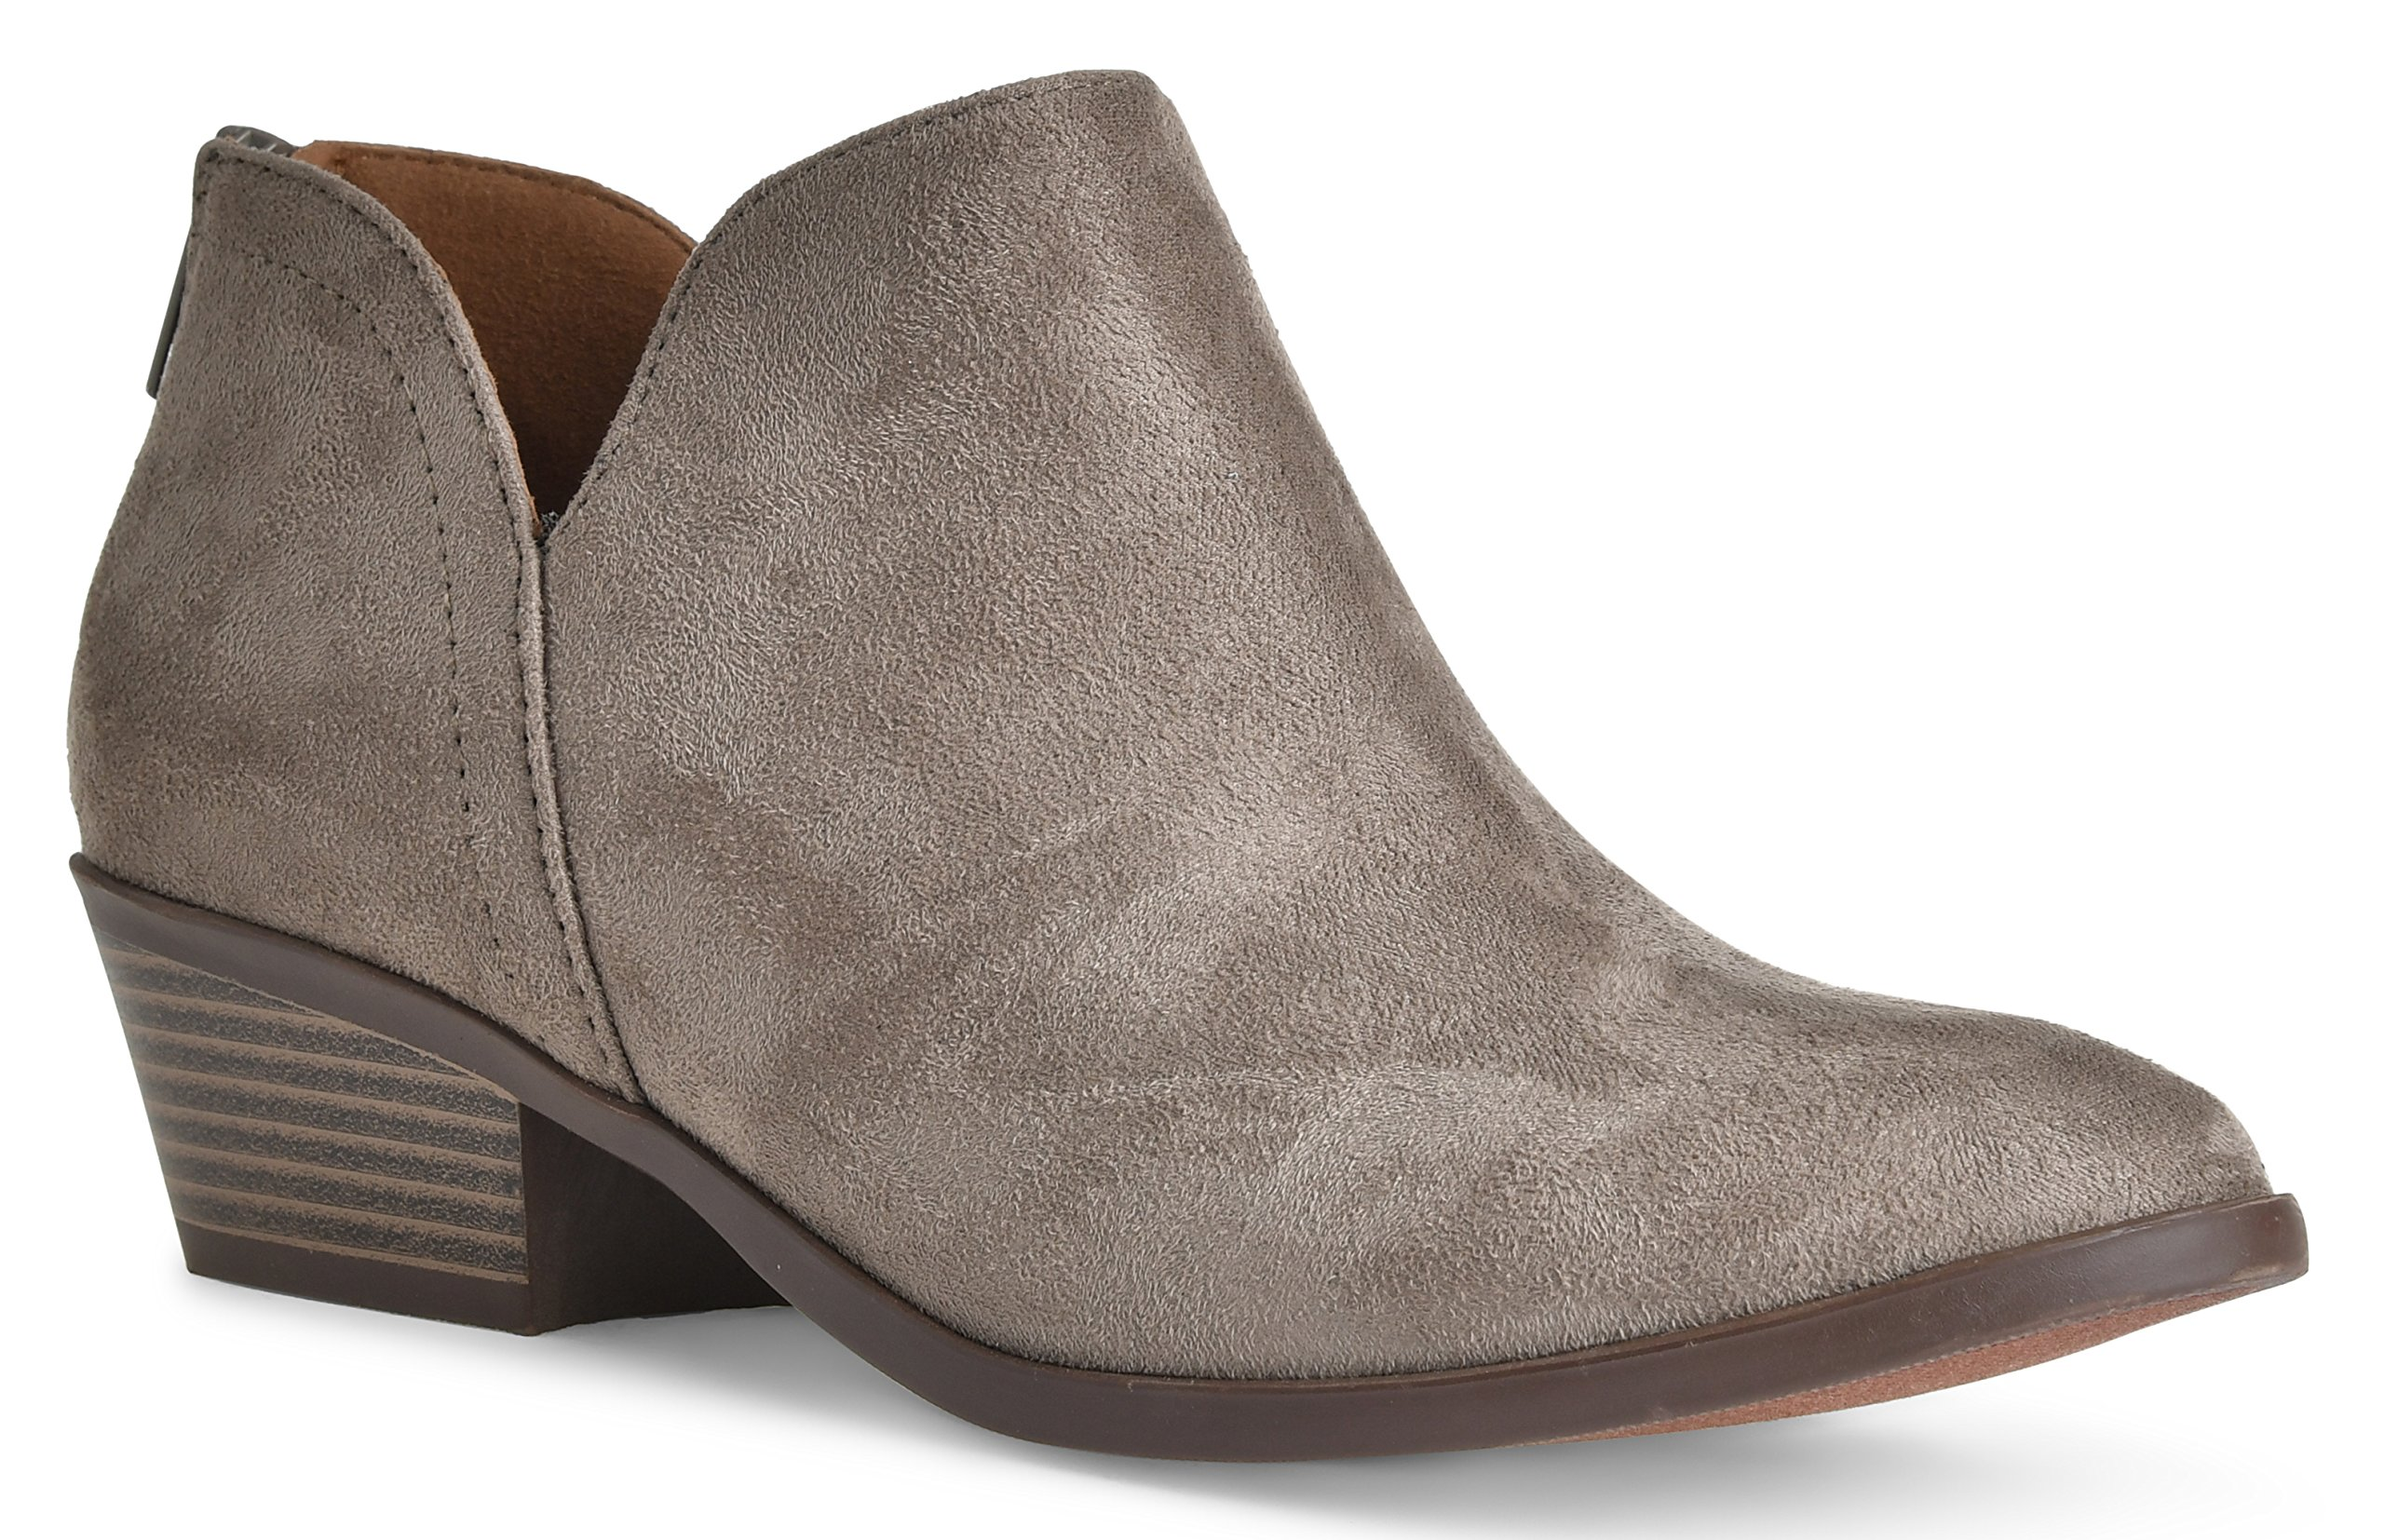 Women's Madeline Western Almond Round Toe Slip on Bootie - Low Stack Heel - Zip Up - Casual Ankle Boot Smokey Taupe Suede 8.5